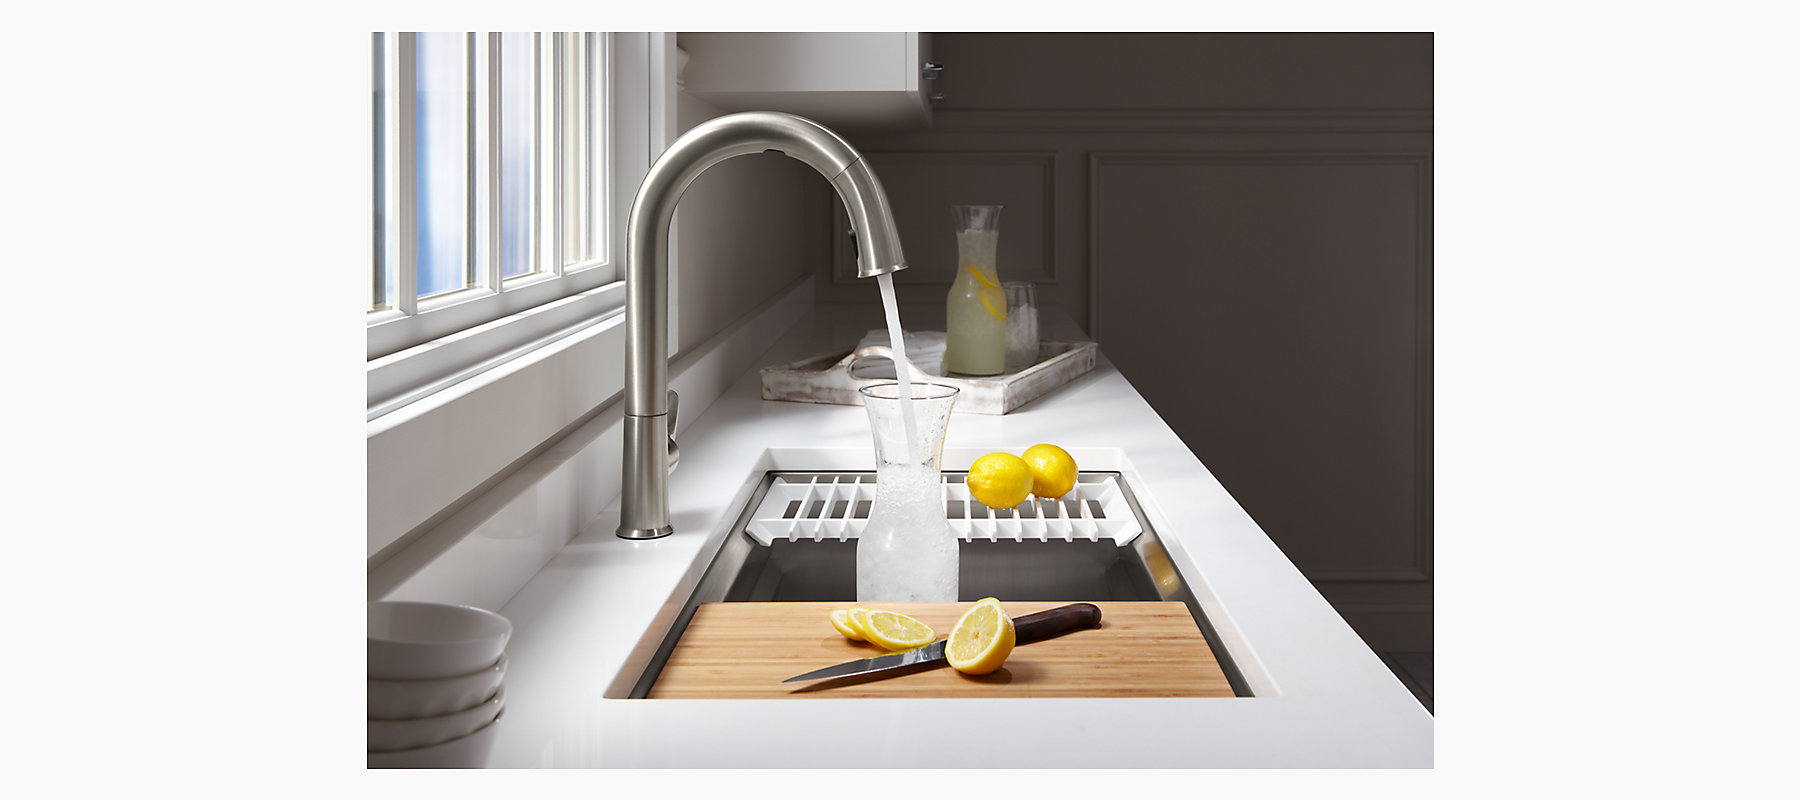 Prolific Under-Mount Stainless-Steel Sink with Accessories K-5540 ...